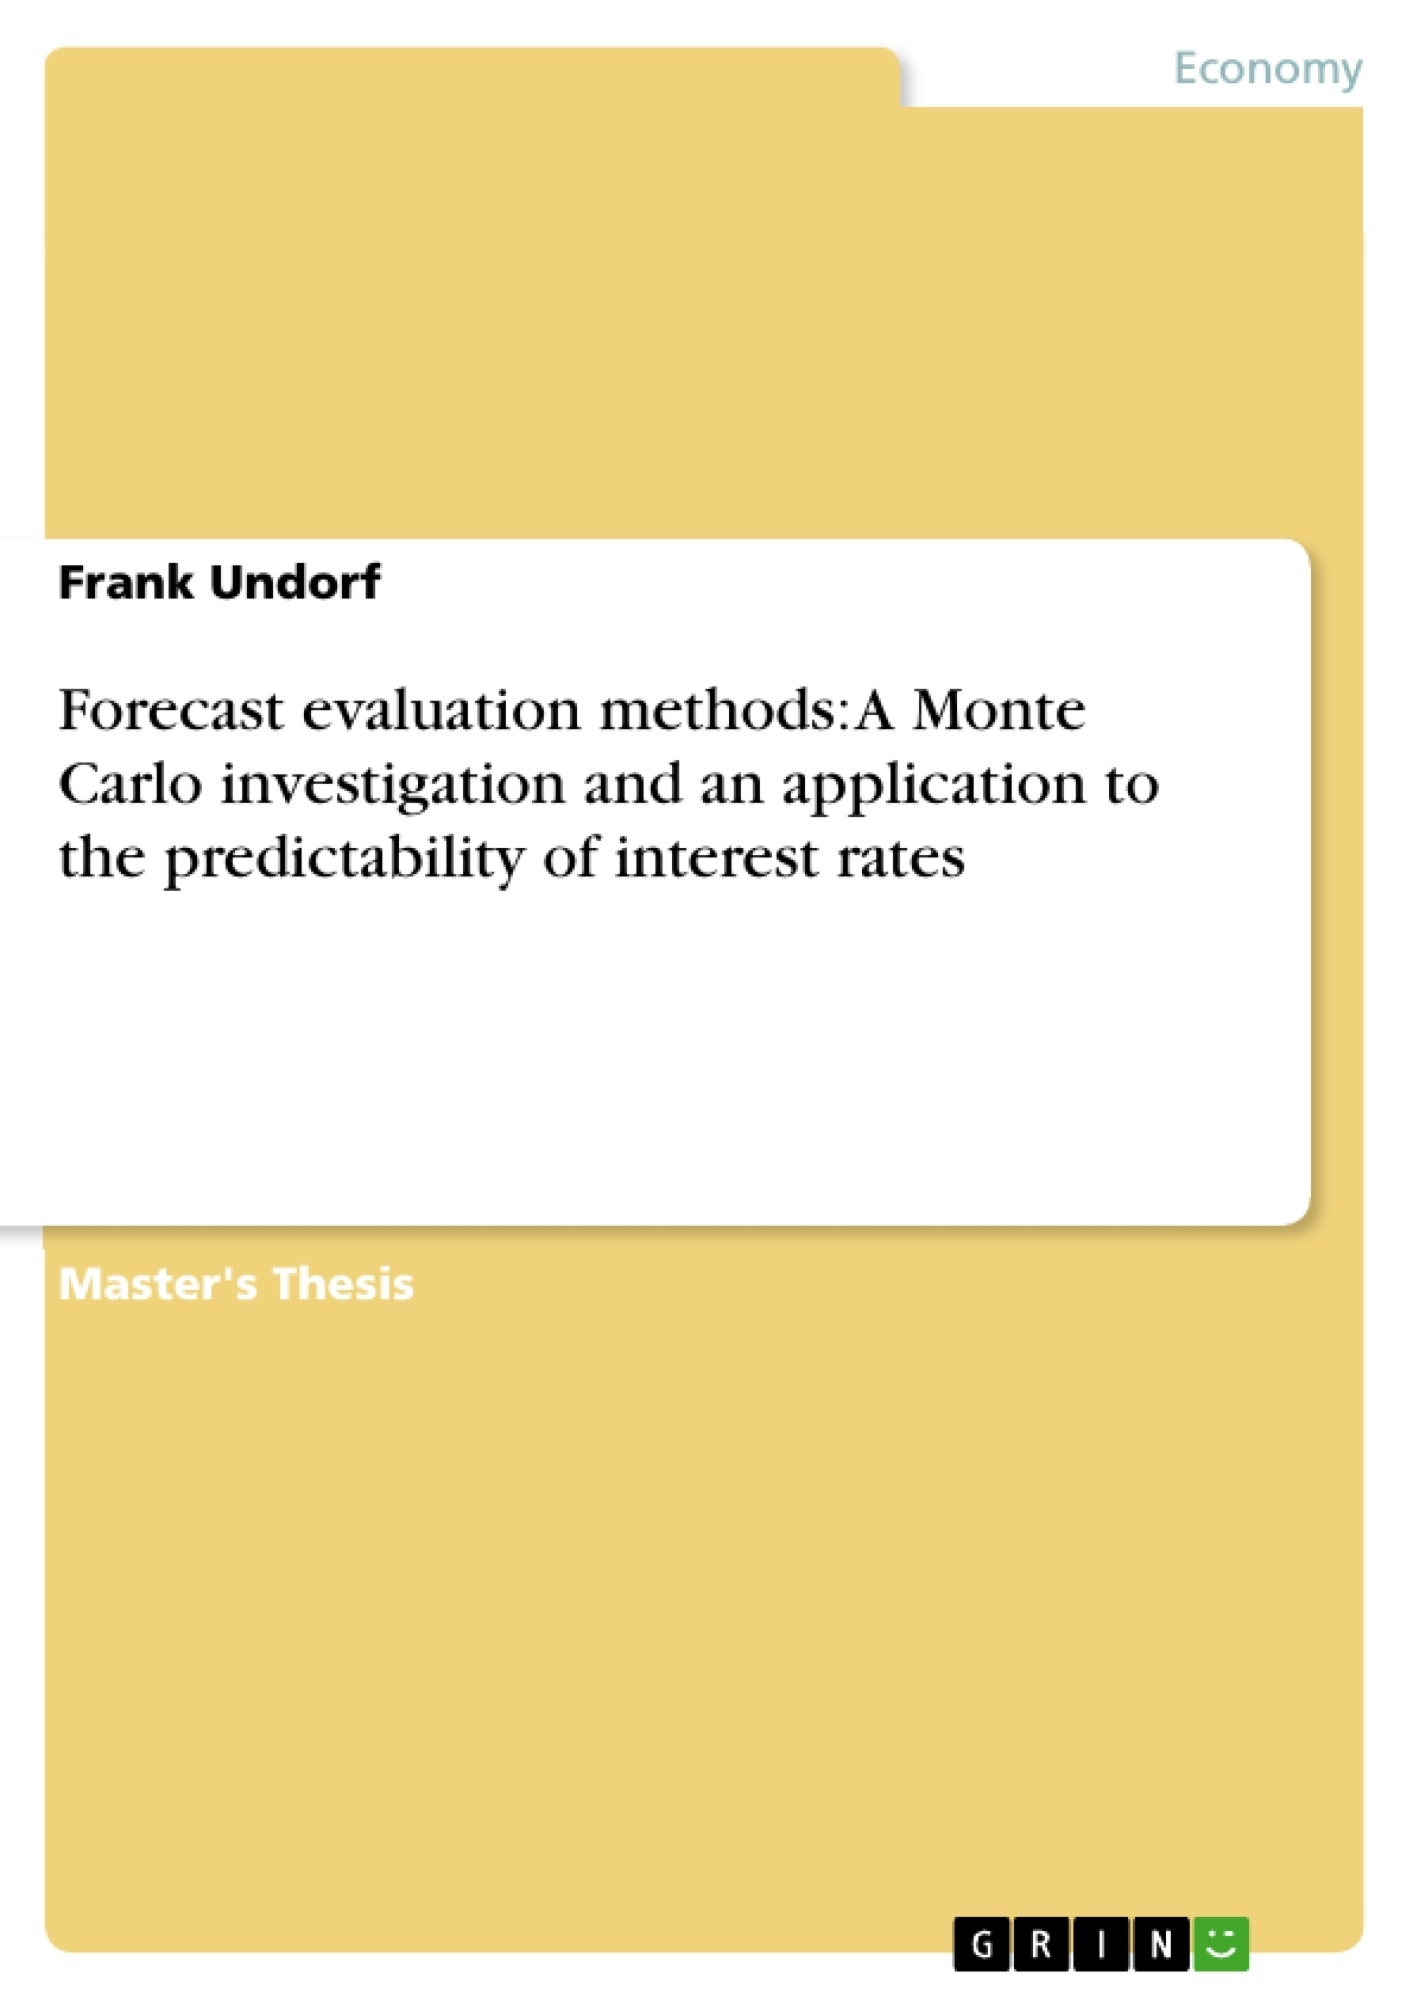 Title: Forecast evaluation methods: A Monte Carlo investigation and an application to the predictability of interest rates